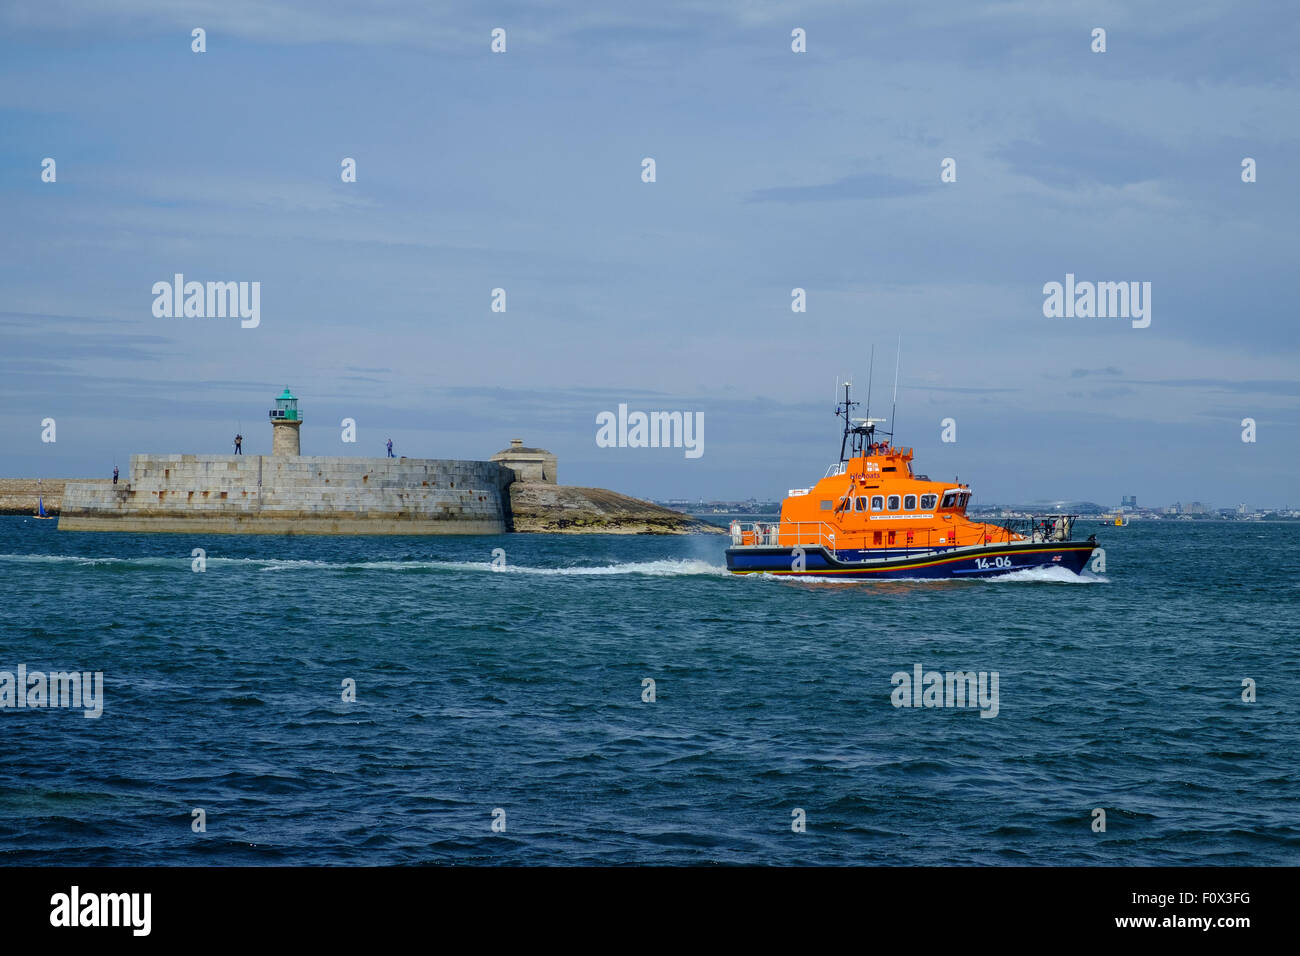 rnli lifeboat dun laoghaire 14-06 windsor runner Stock Photo